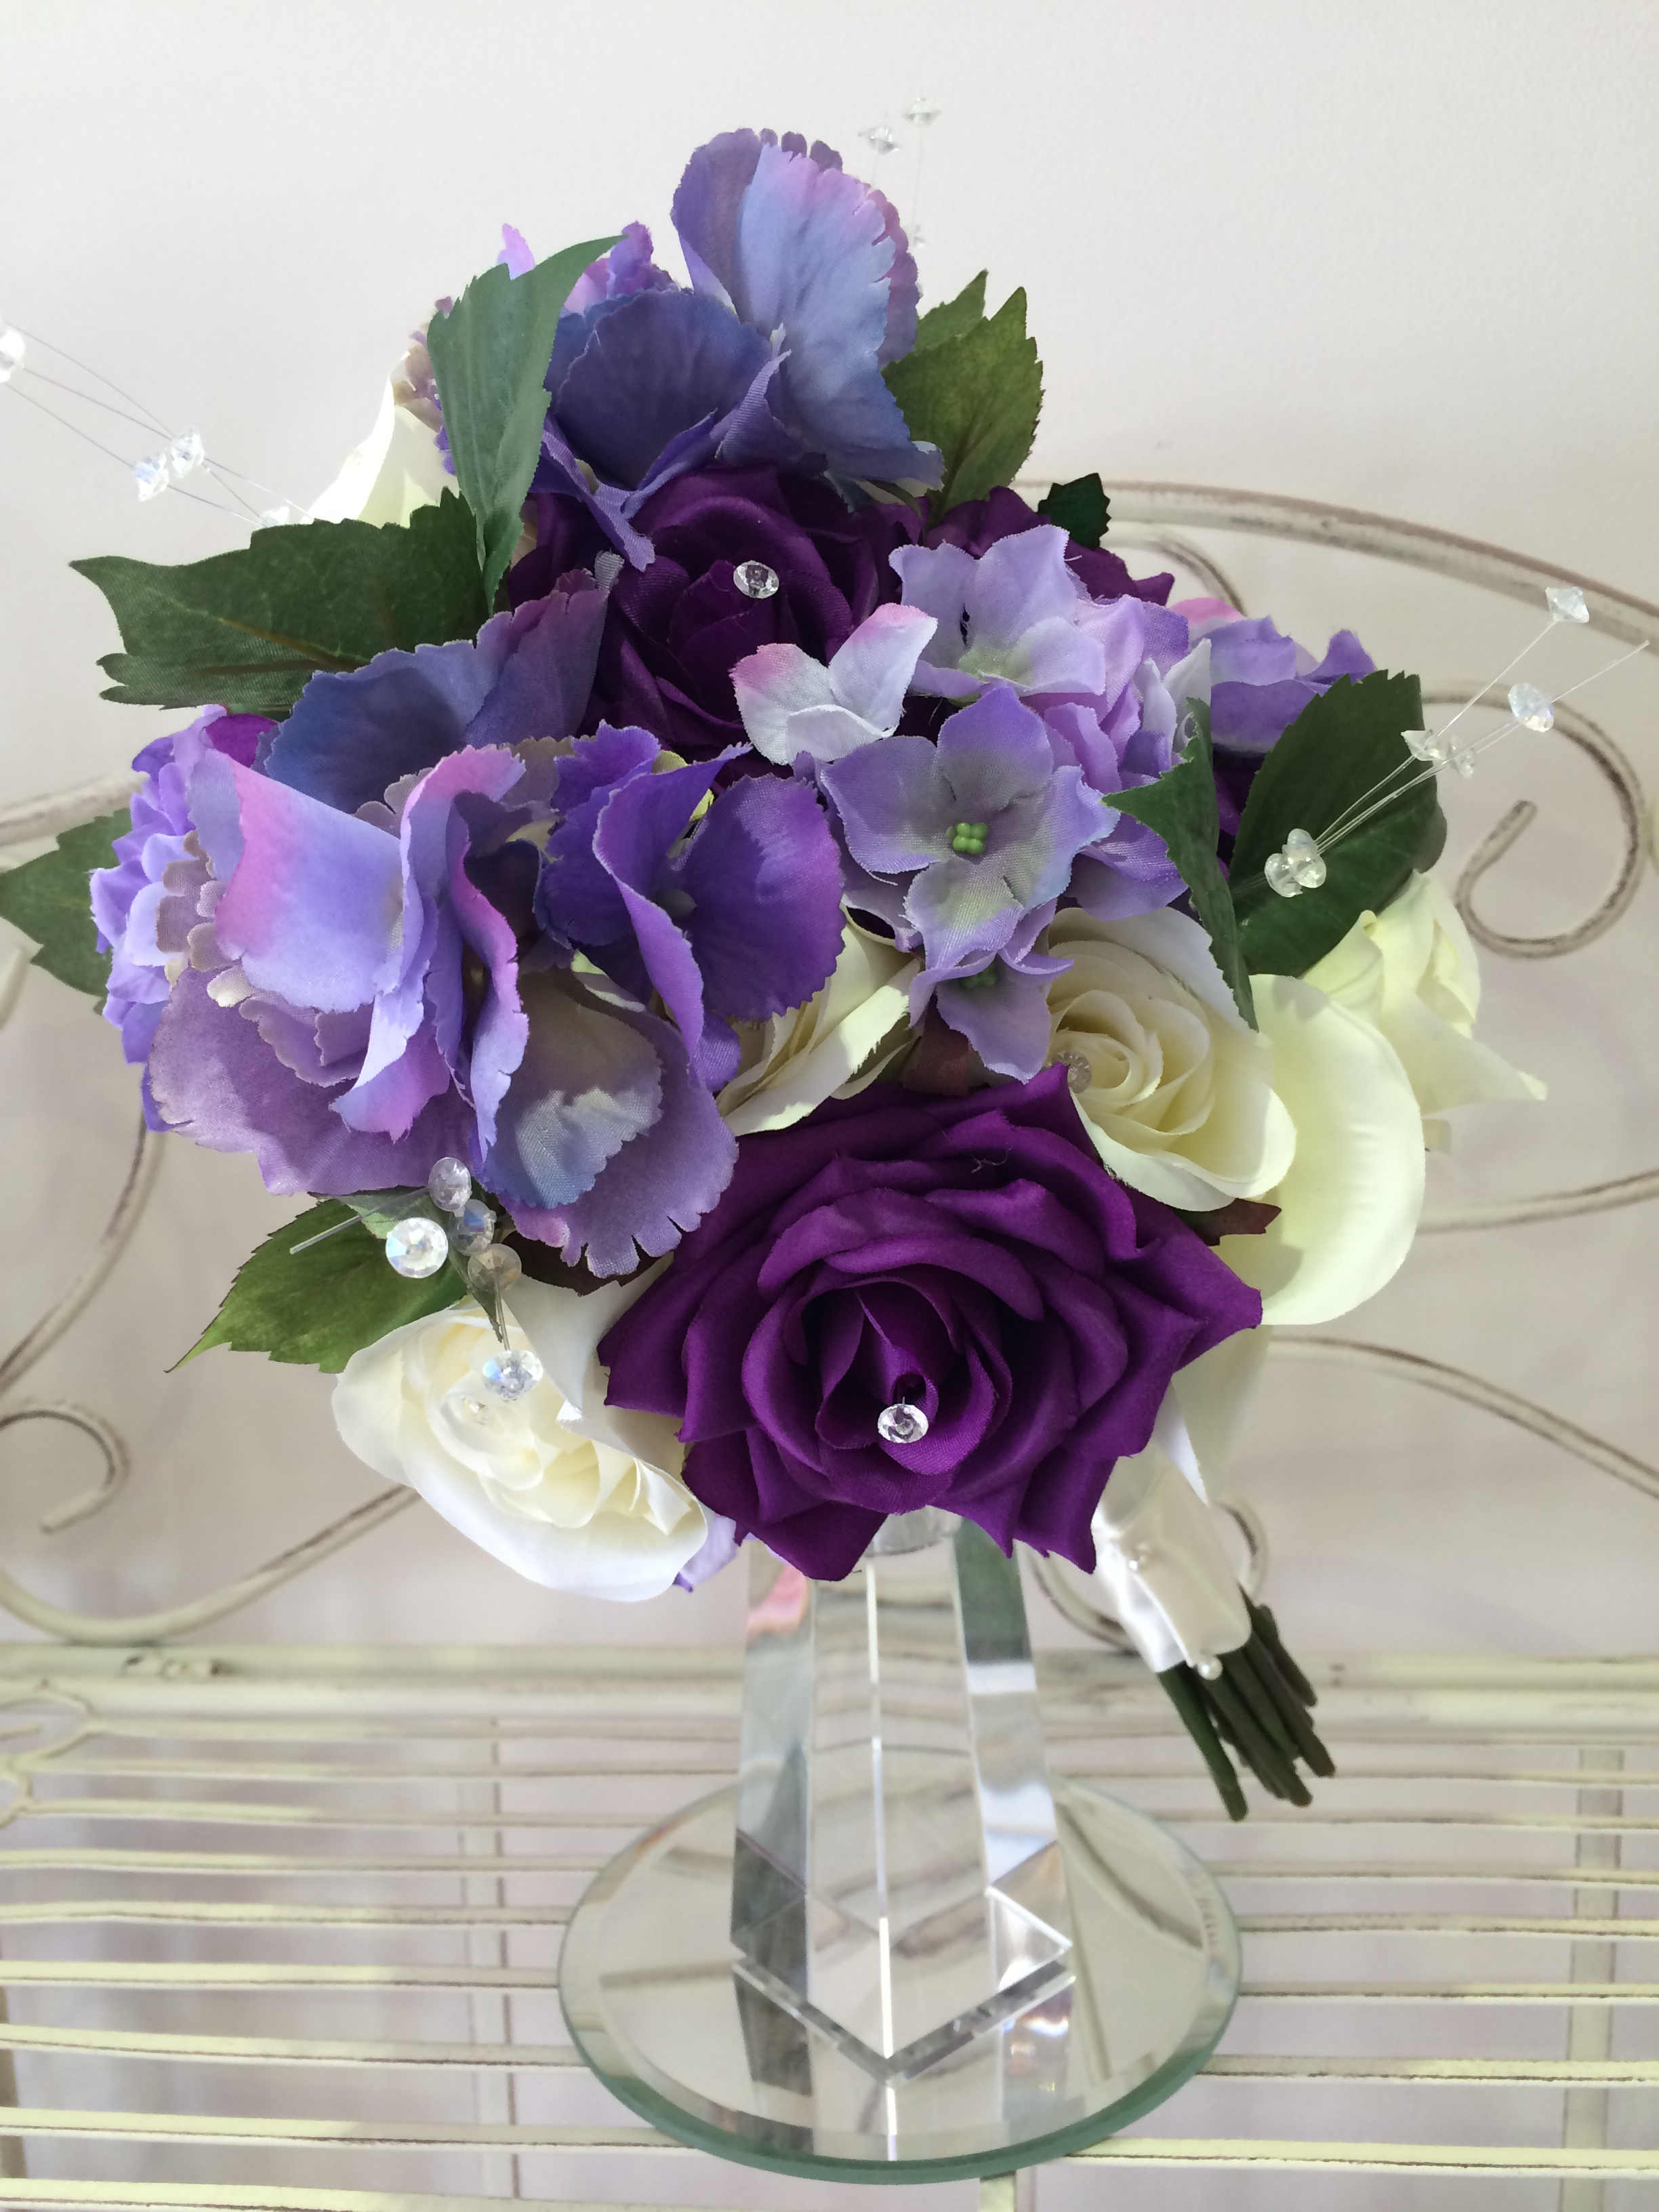 Brides Handtied Bouquet With Cadbury Purple Roses, Lilac Hydrangeas & Cream Roses